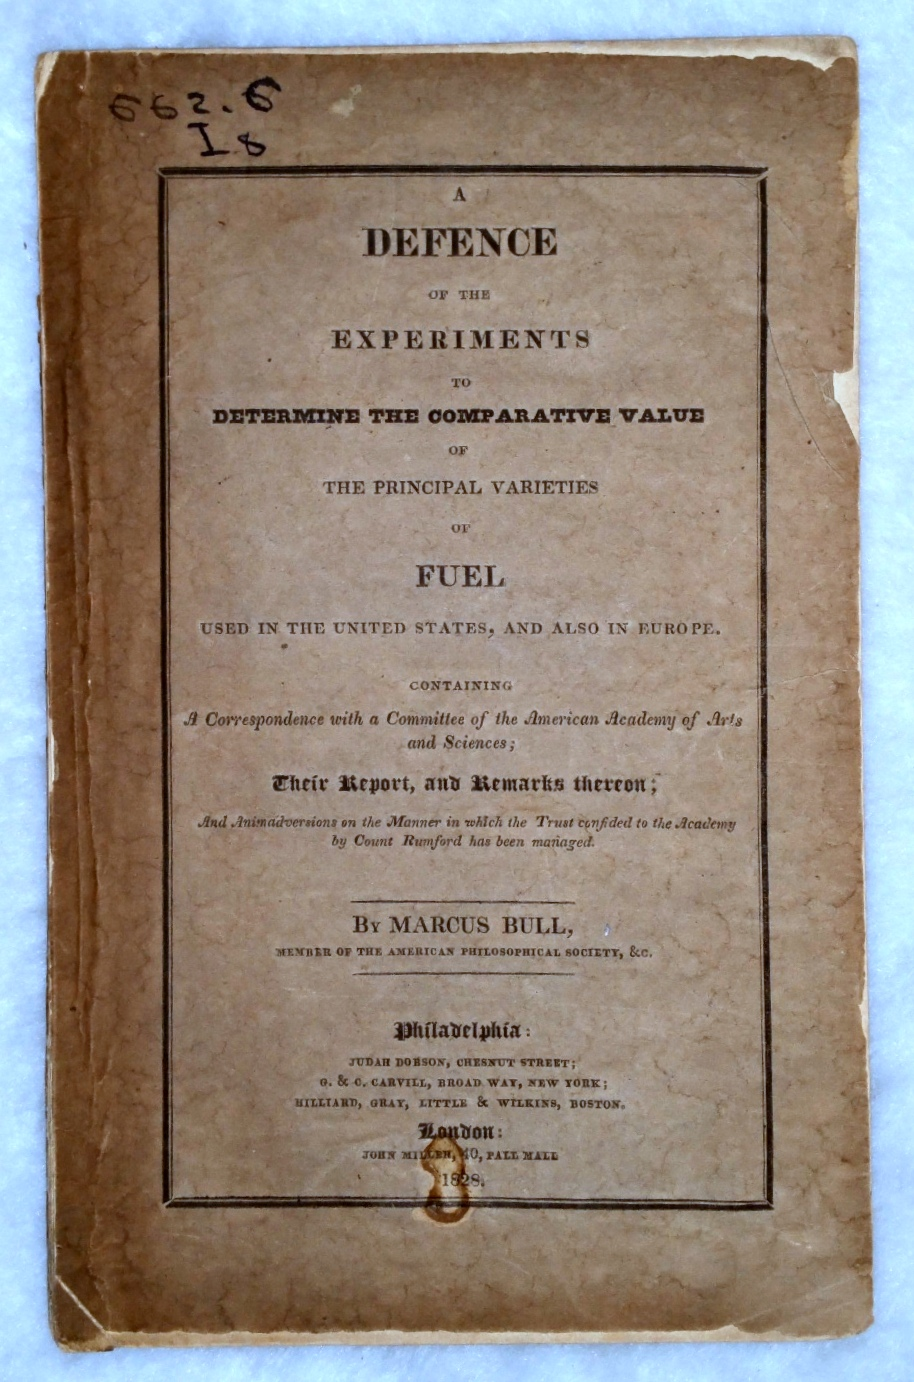 Image for A Defence of the Experiments to Determine the Comparative Value of the Principal Varieties of Fuel Used in the United States, and Also in Europe, Containing A Correspondence with a Committee of the American Academy of Arts and Sciences...